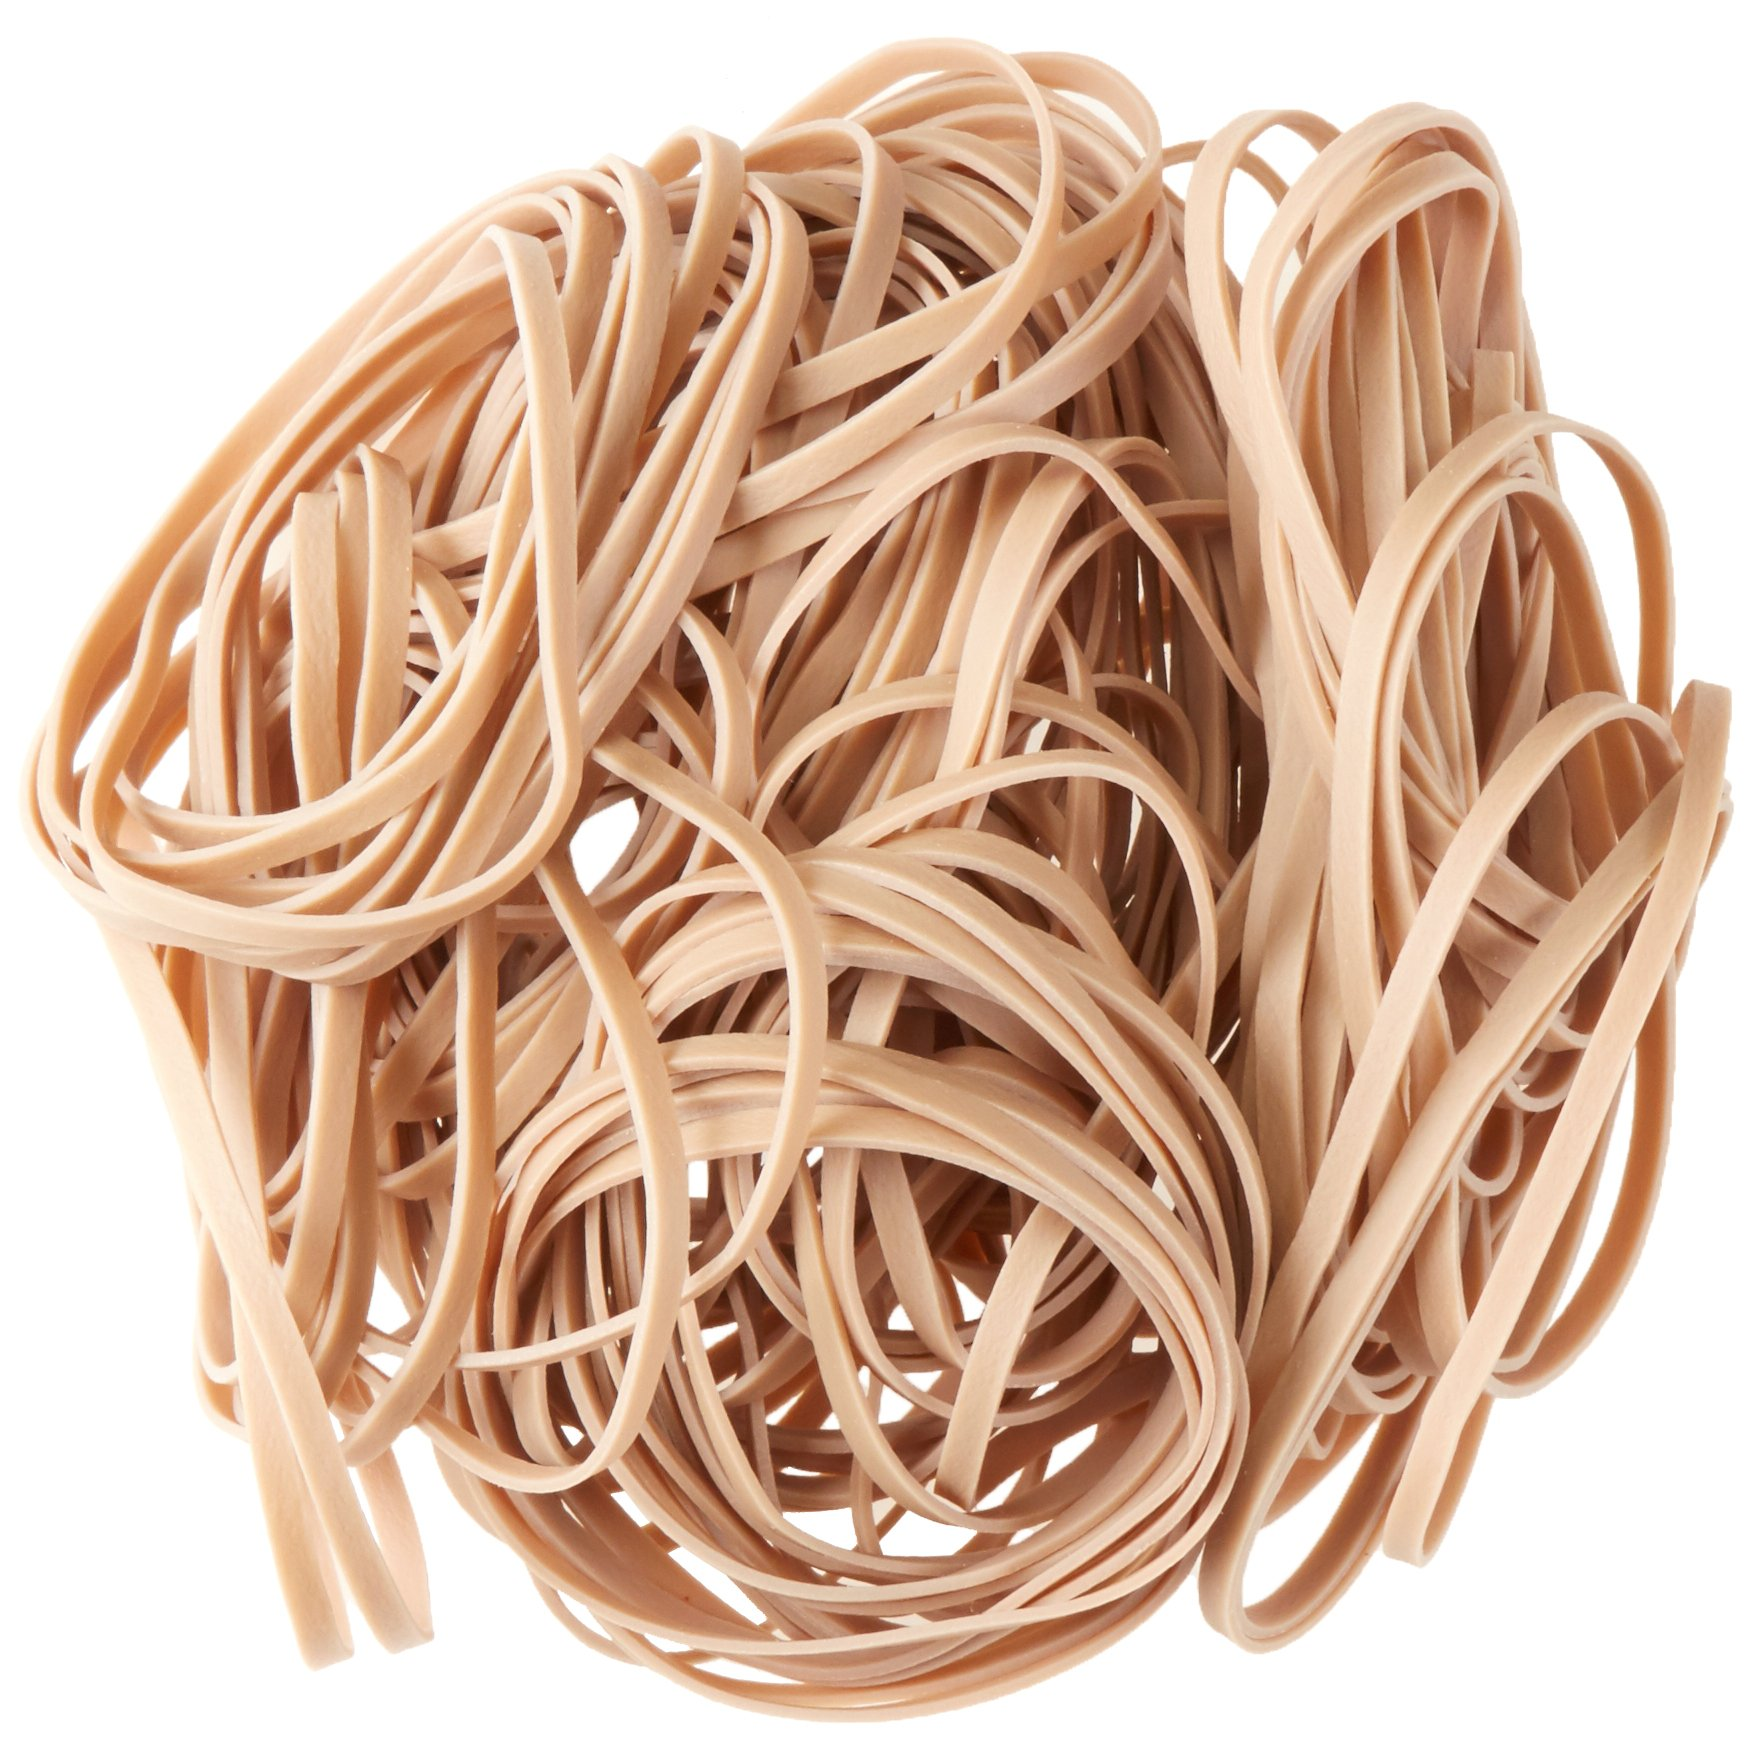 AmazonBasics Rubber Bands, Size 33 (3-1/2 x 1/8 Inch), 600 Bands/1 lb. Pack, 3-Pack